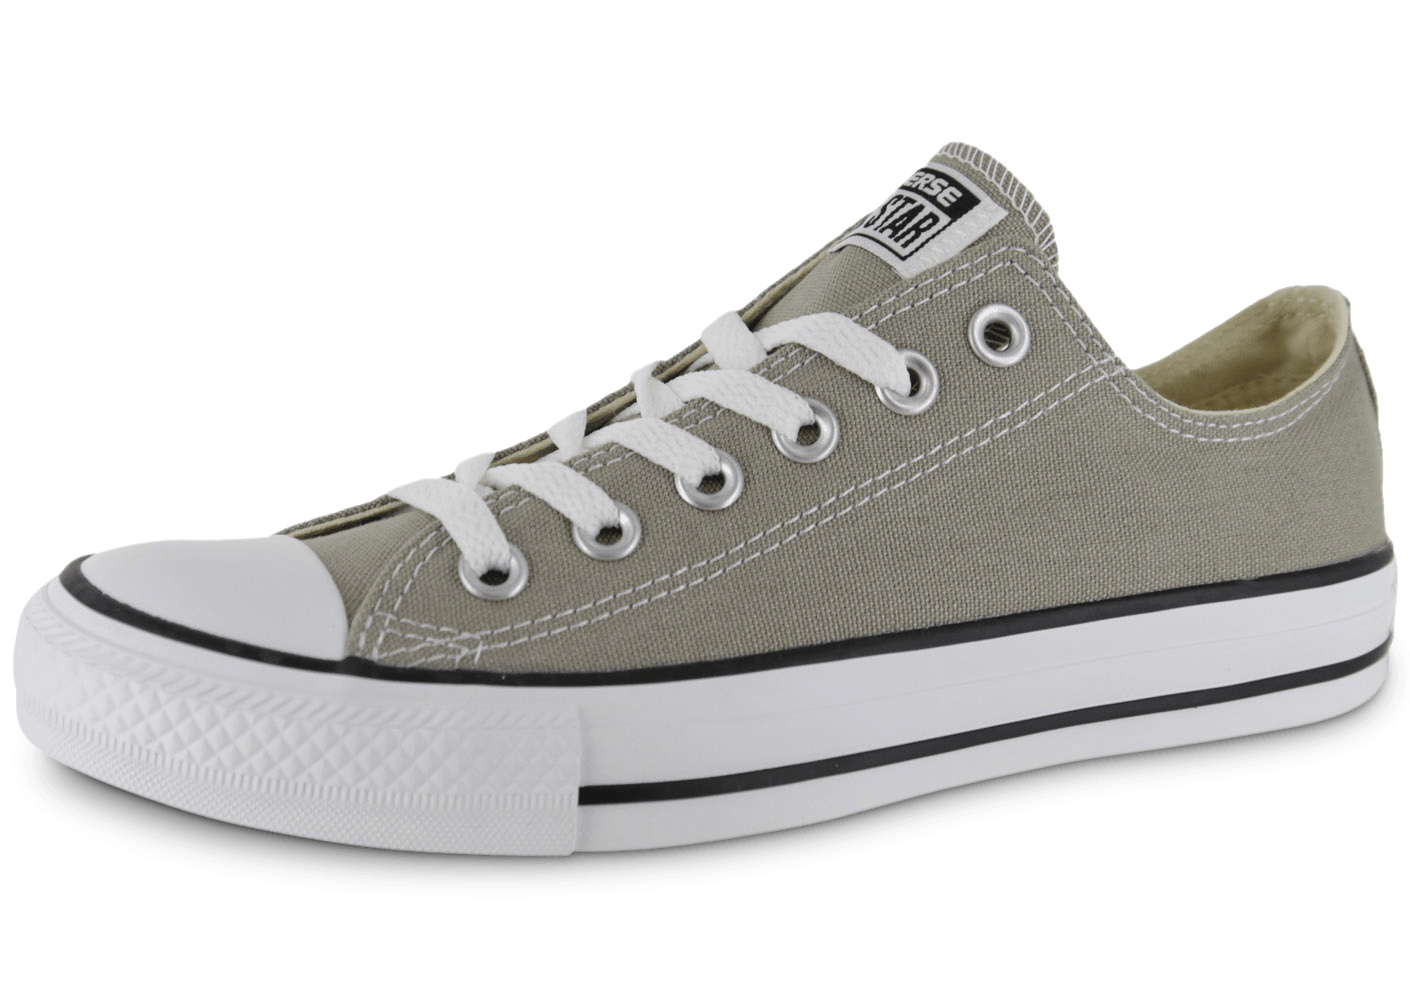 c34c22b06939a Converse Chuck Taylor All Star basse argent - Chaussures Chaussures -  Chausport